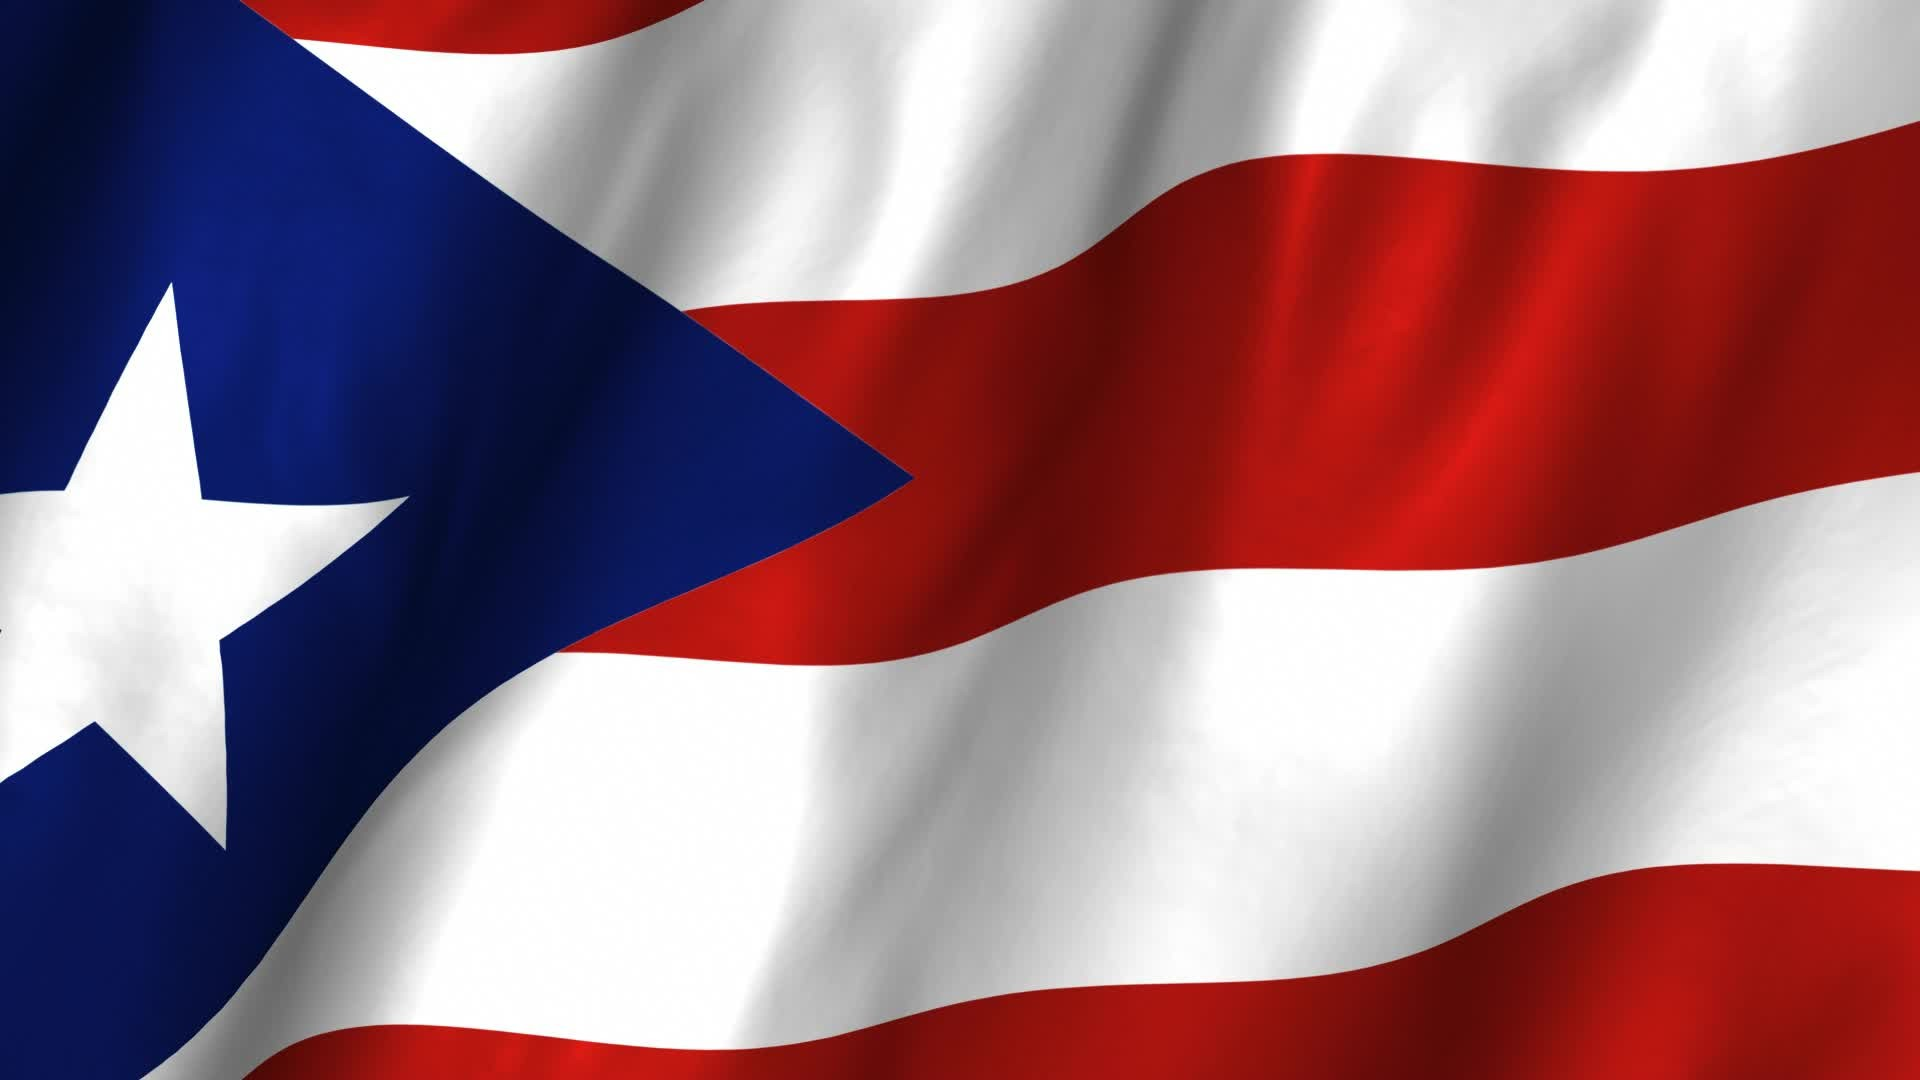 1920x1080 Puerto Rico Flag Desktop Wallpaper 50702